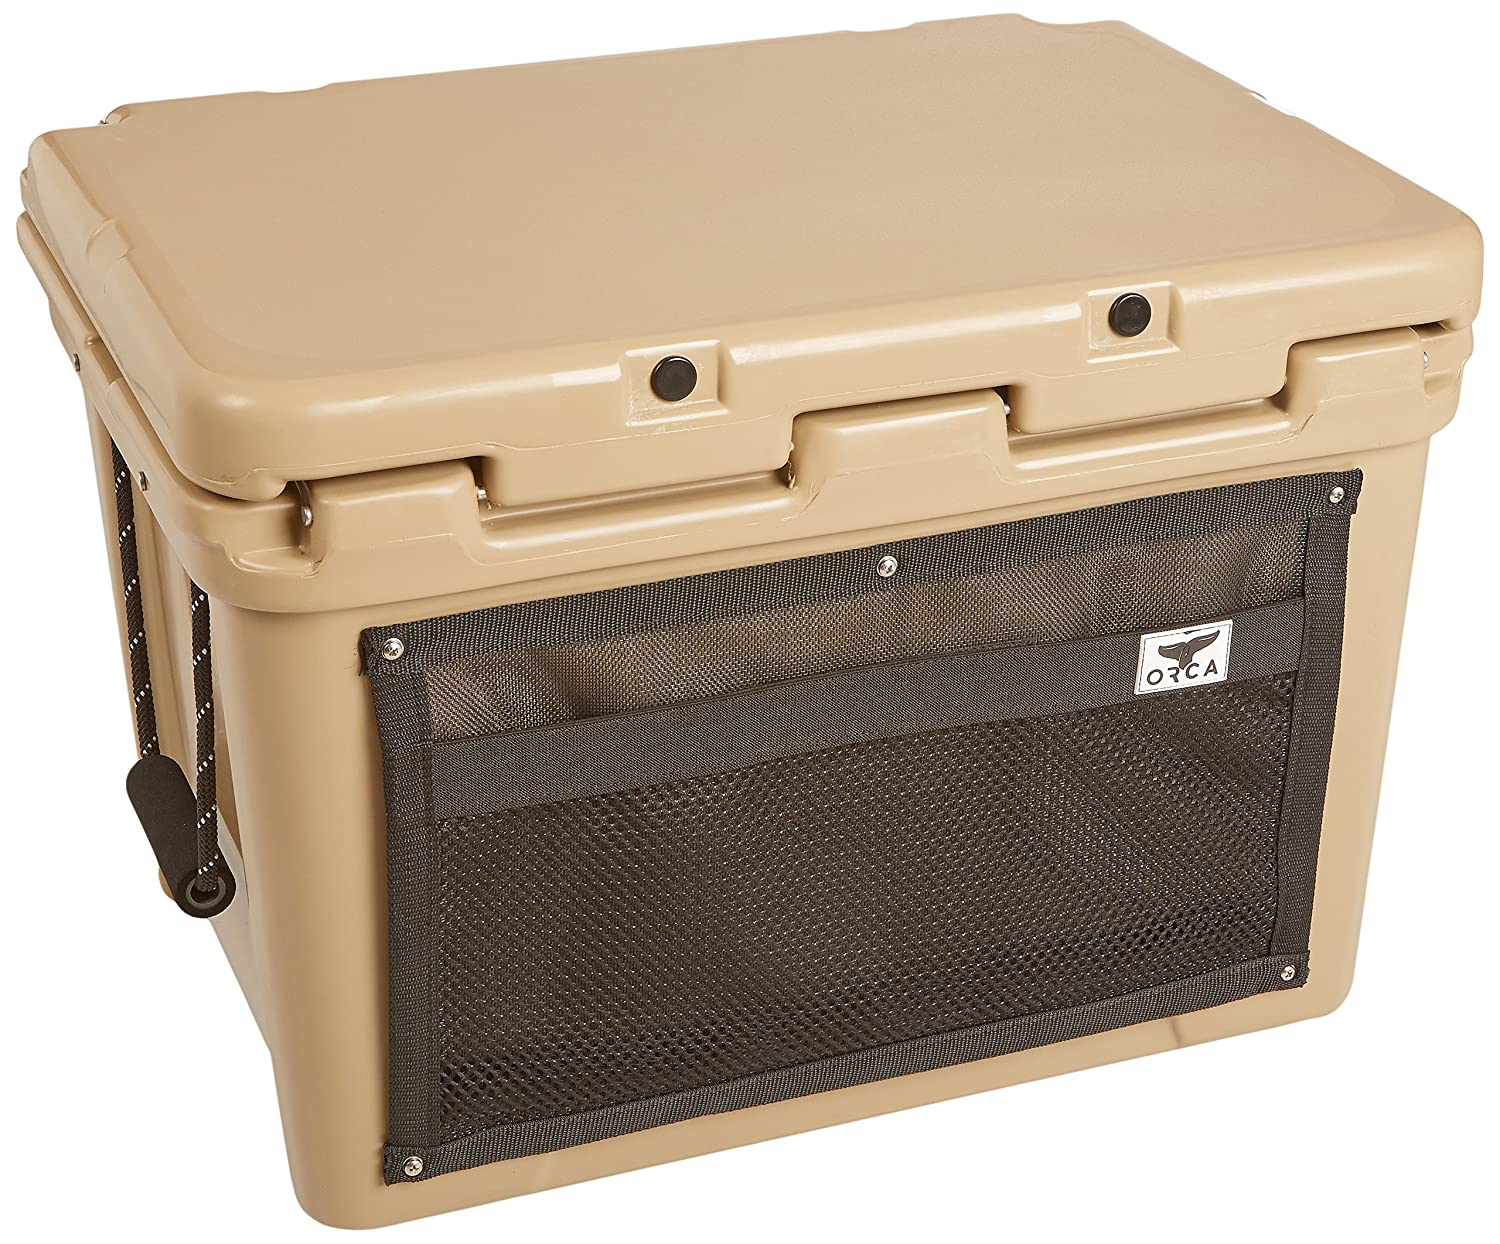 ORCA TP0580RCORCA Cooler, Tan, 58-Quart